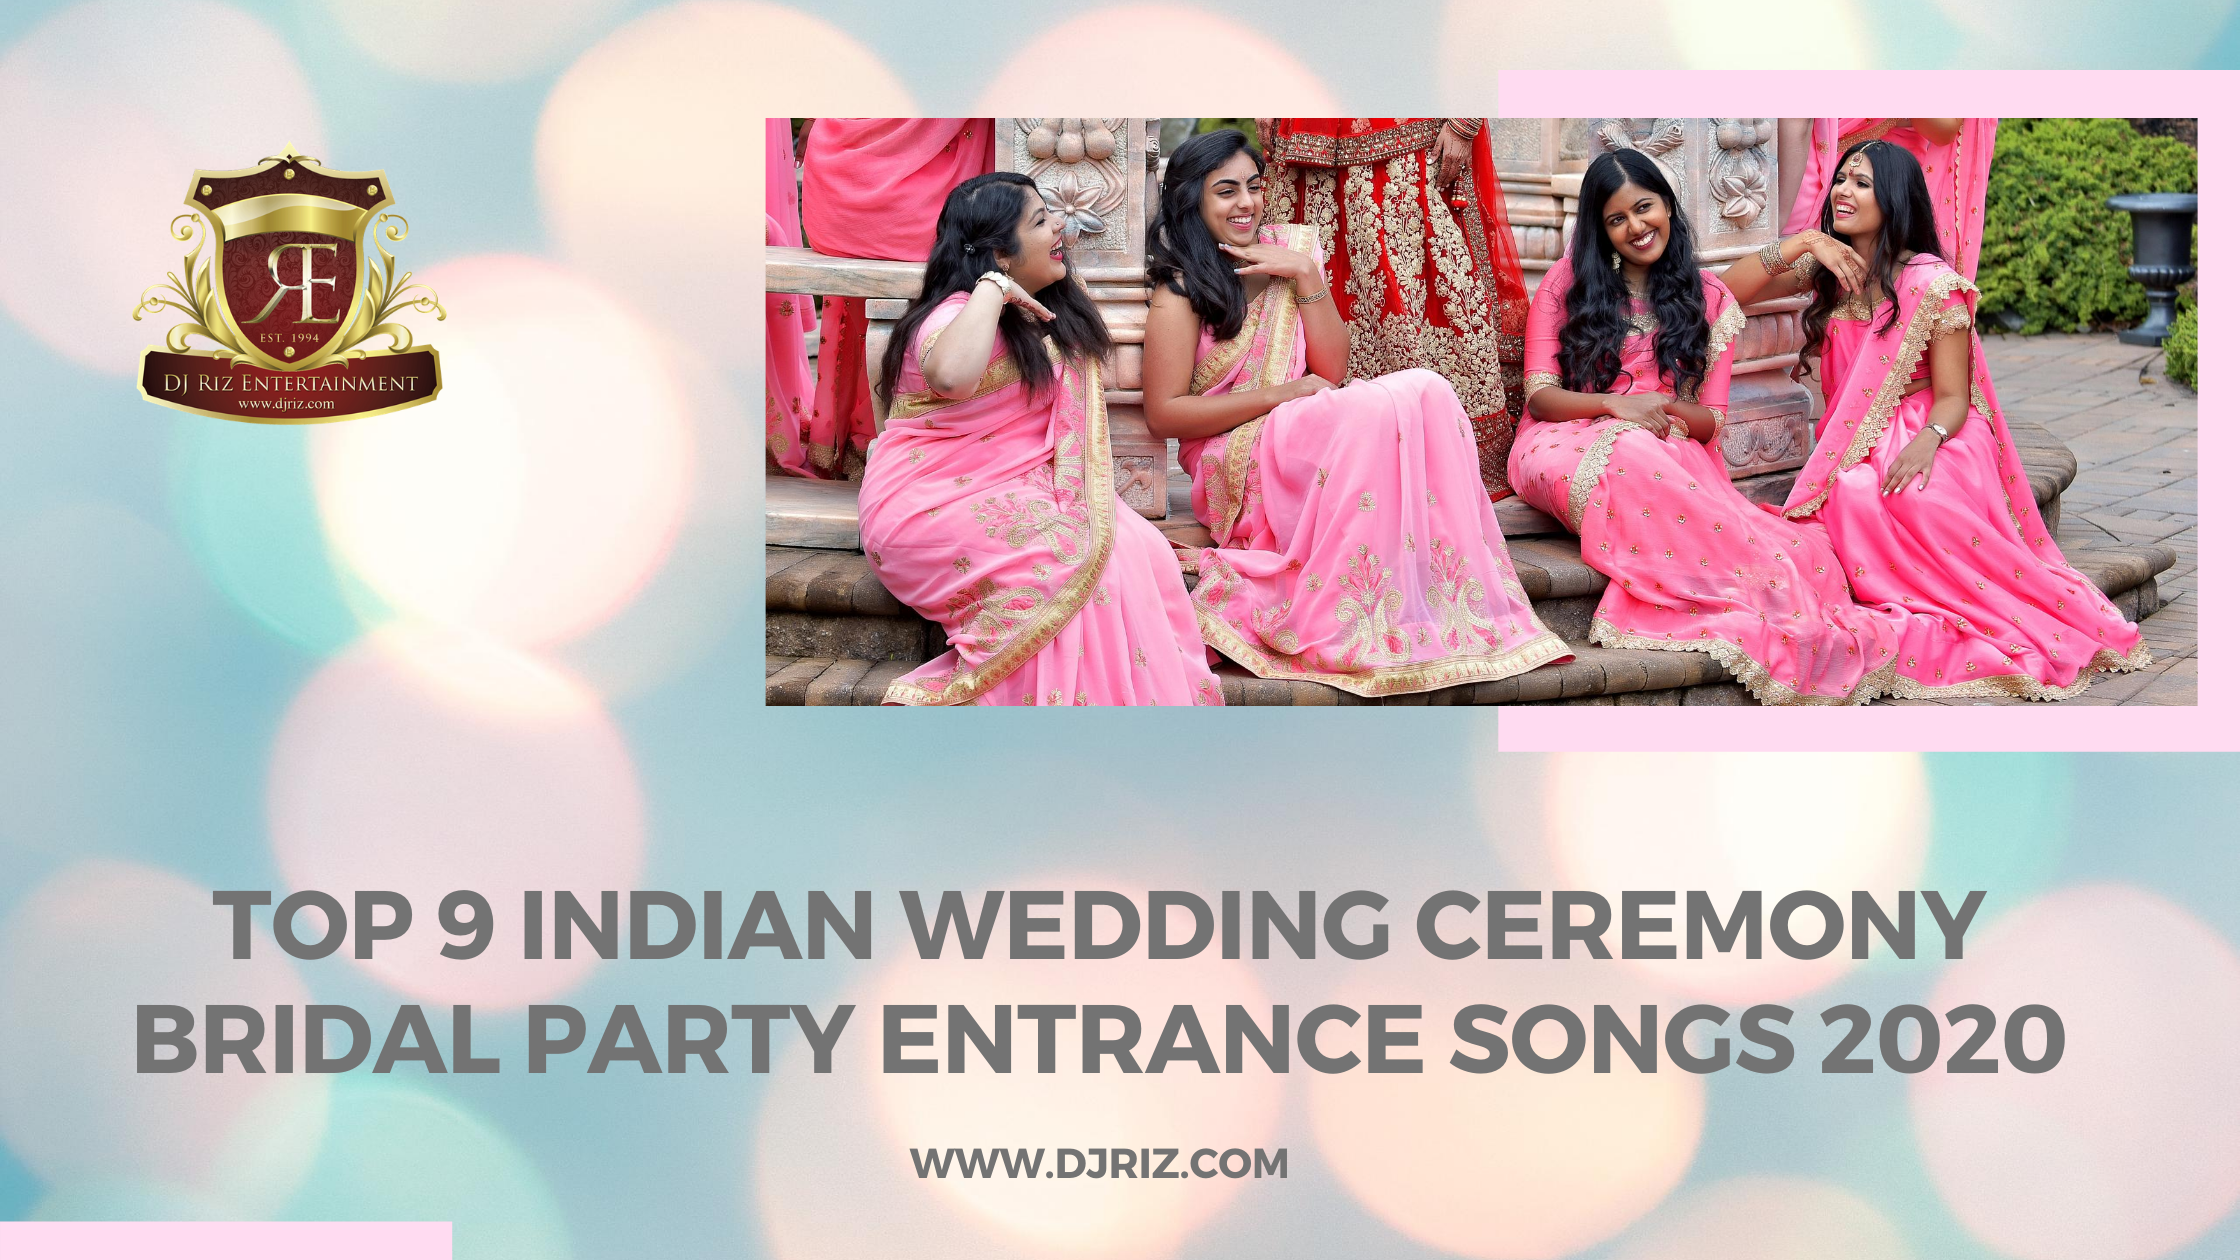 Top 9 Indian Wedding Ceremony Bridal Party Entrance Songs 2020